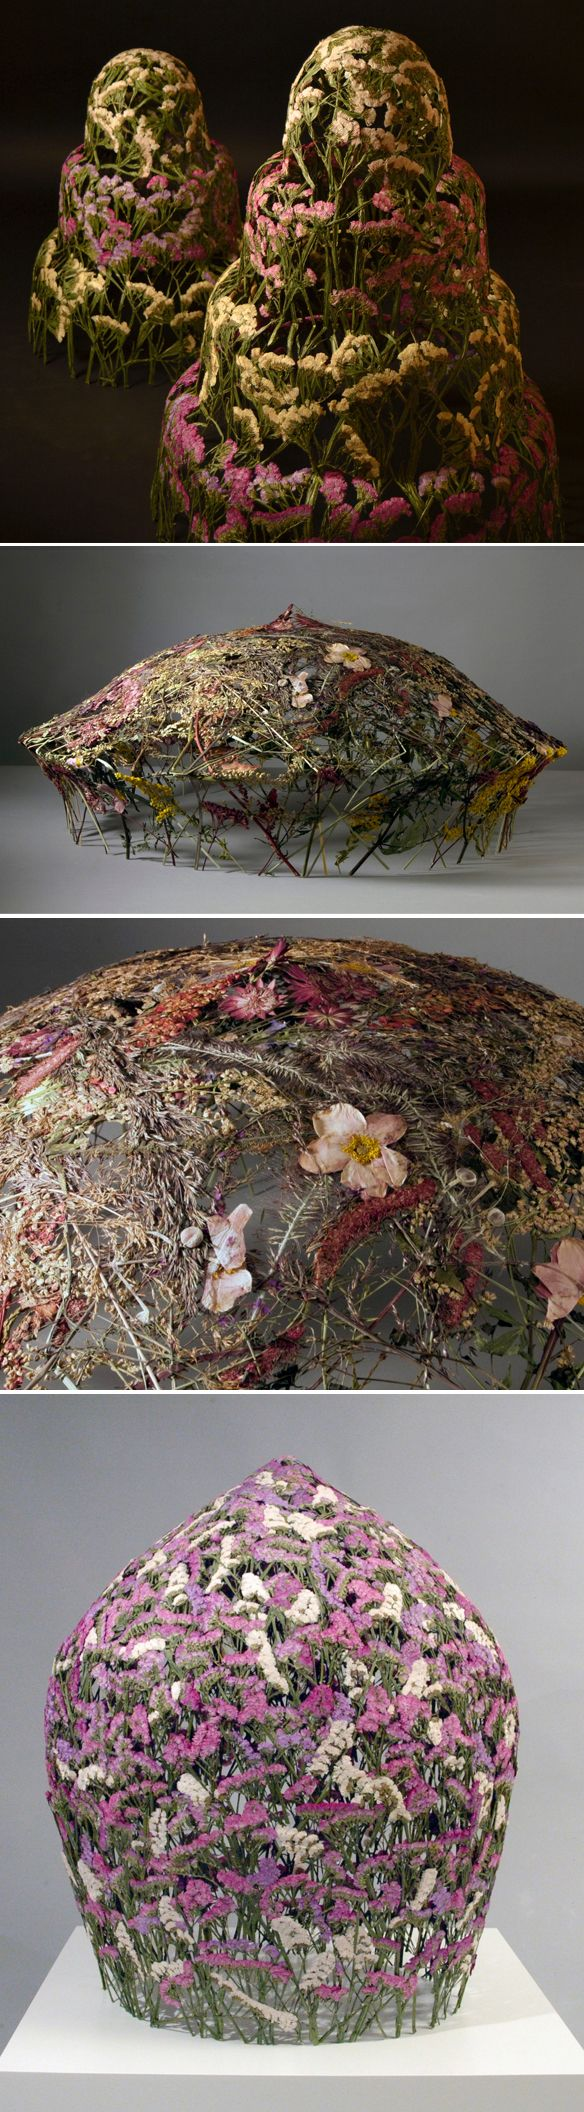 Ignacio Canales Aracil- Pressed Flowers See more at: www.covetlounge.net